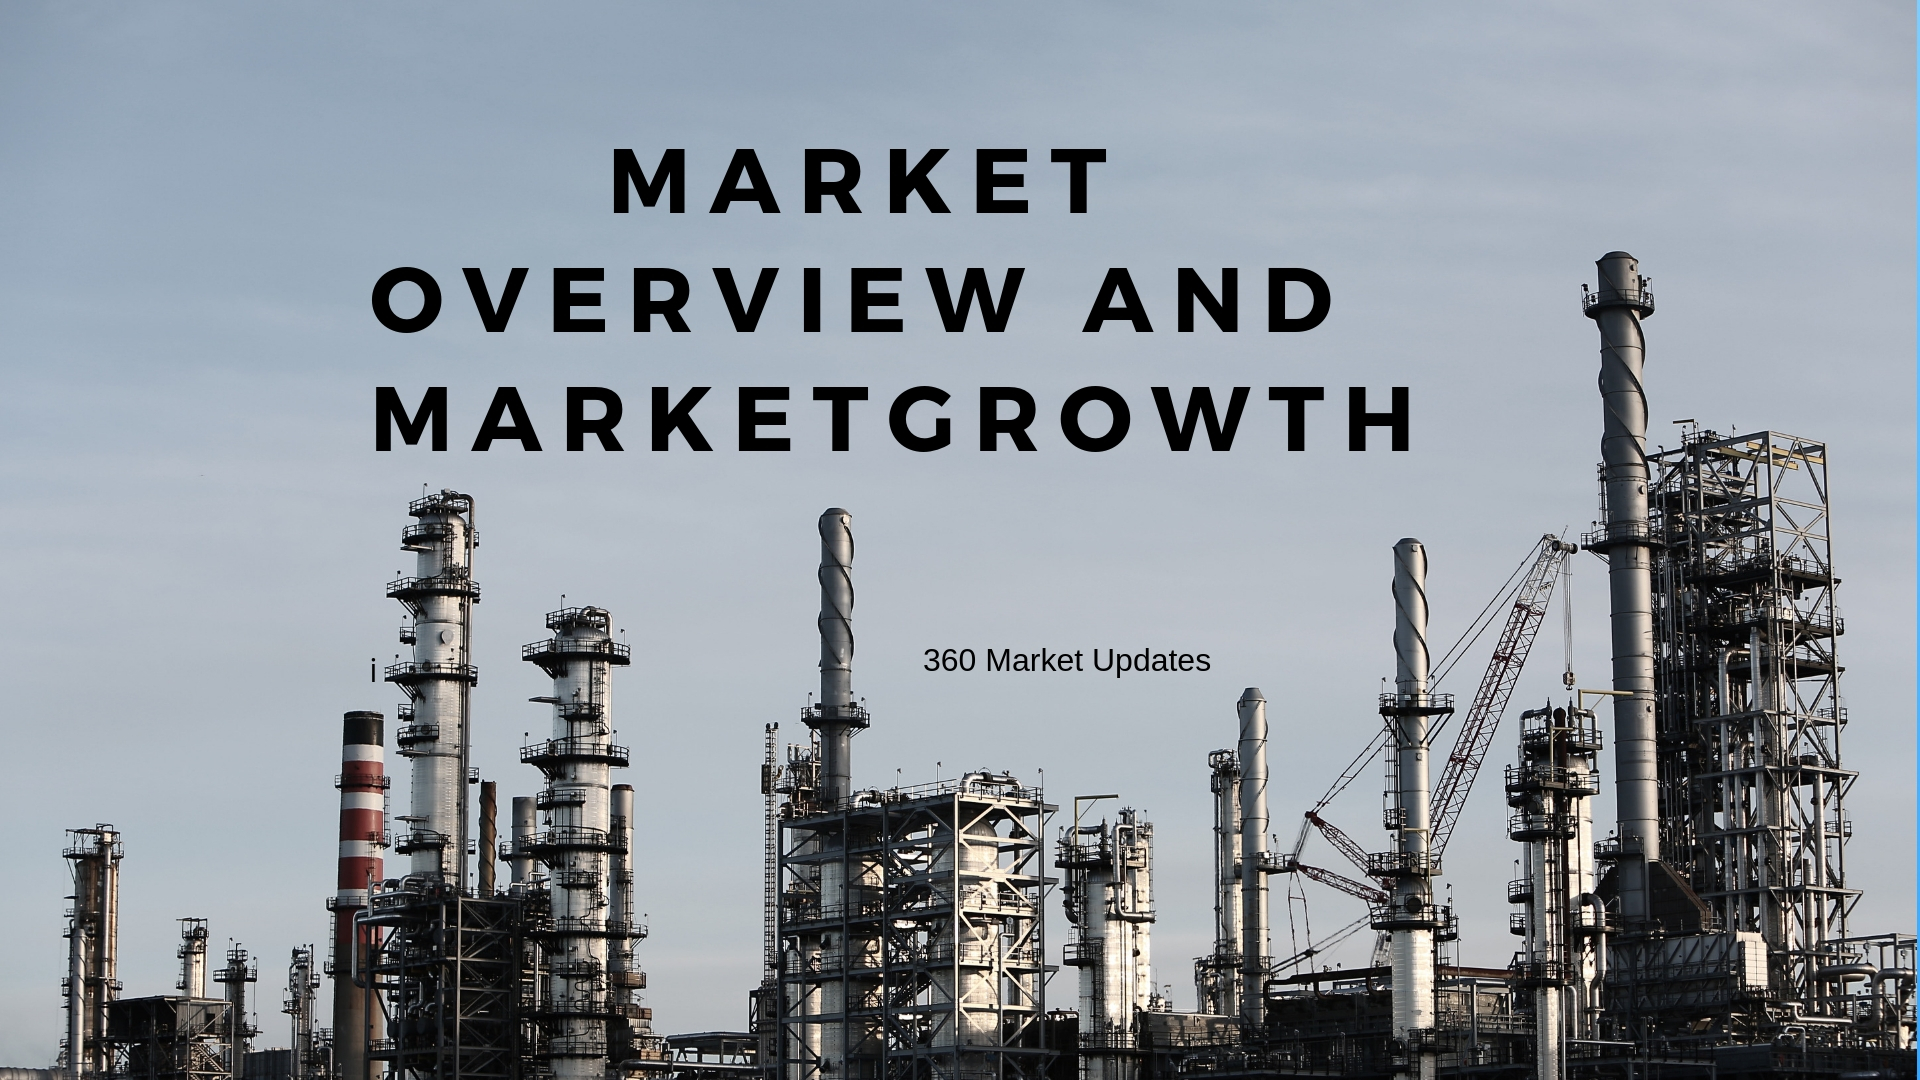 Vacuum Gas Oil Market in 360MarketUpdates.com